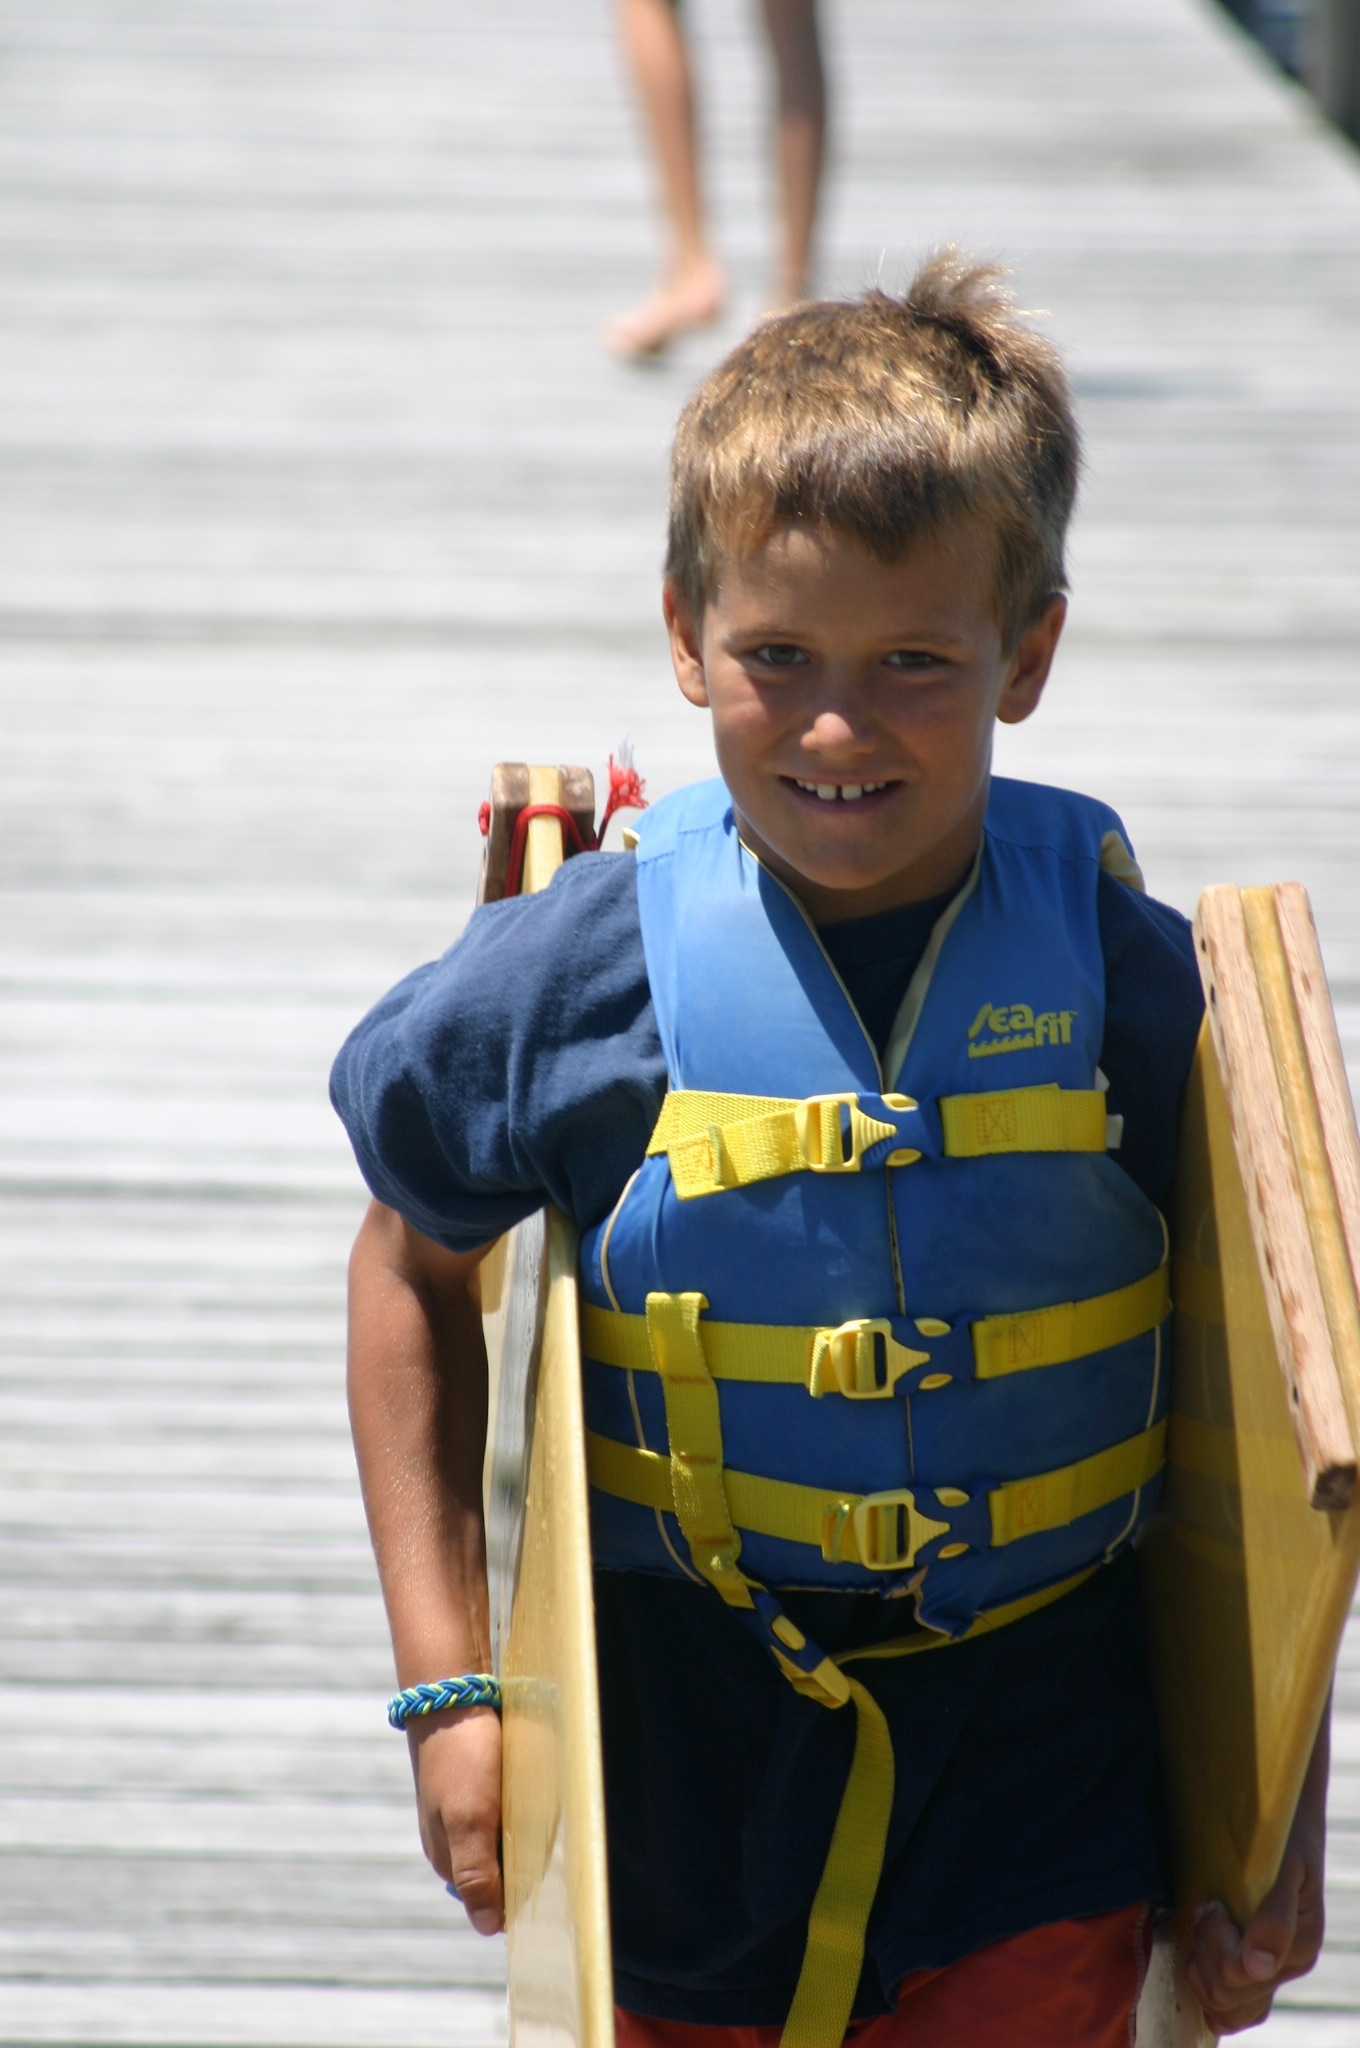 Luke heading out to sailing